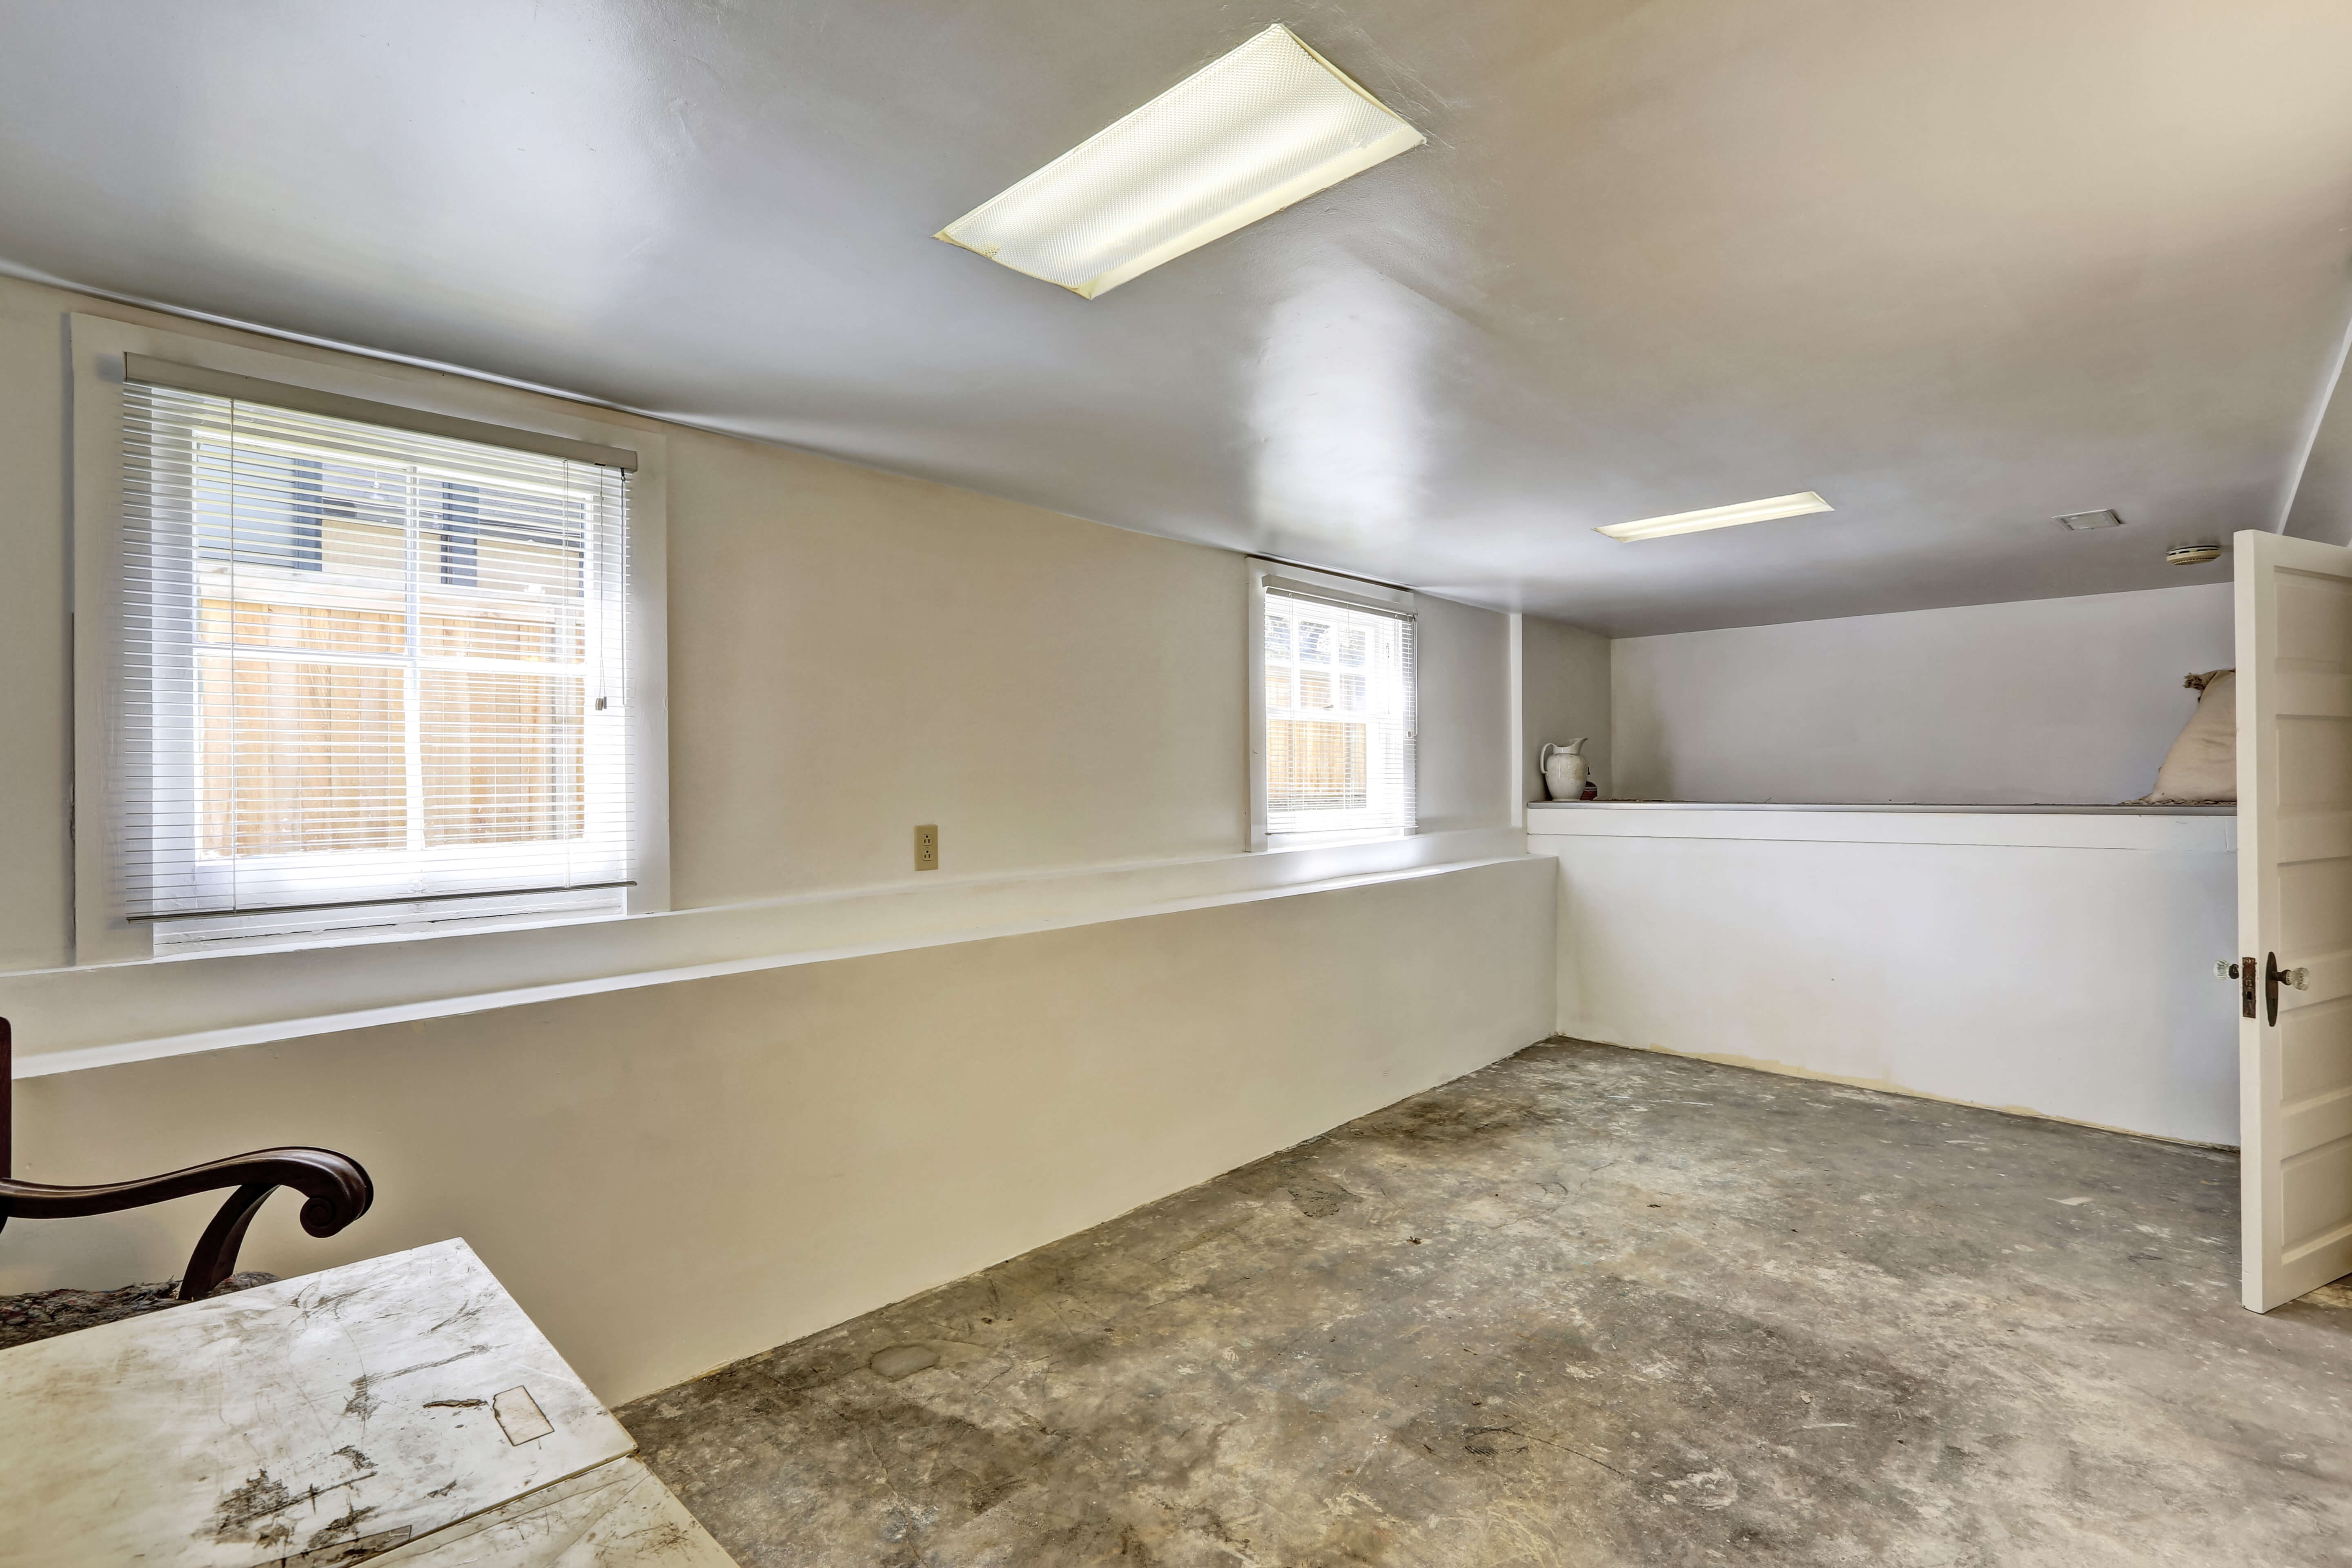 Best flooring for concrete basement floor